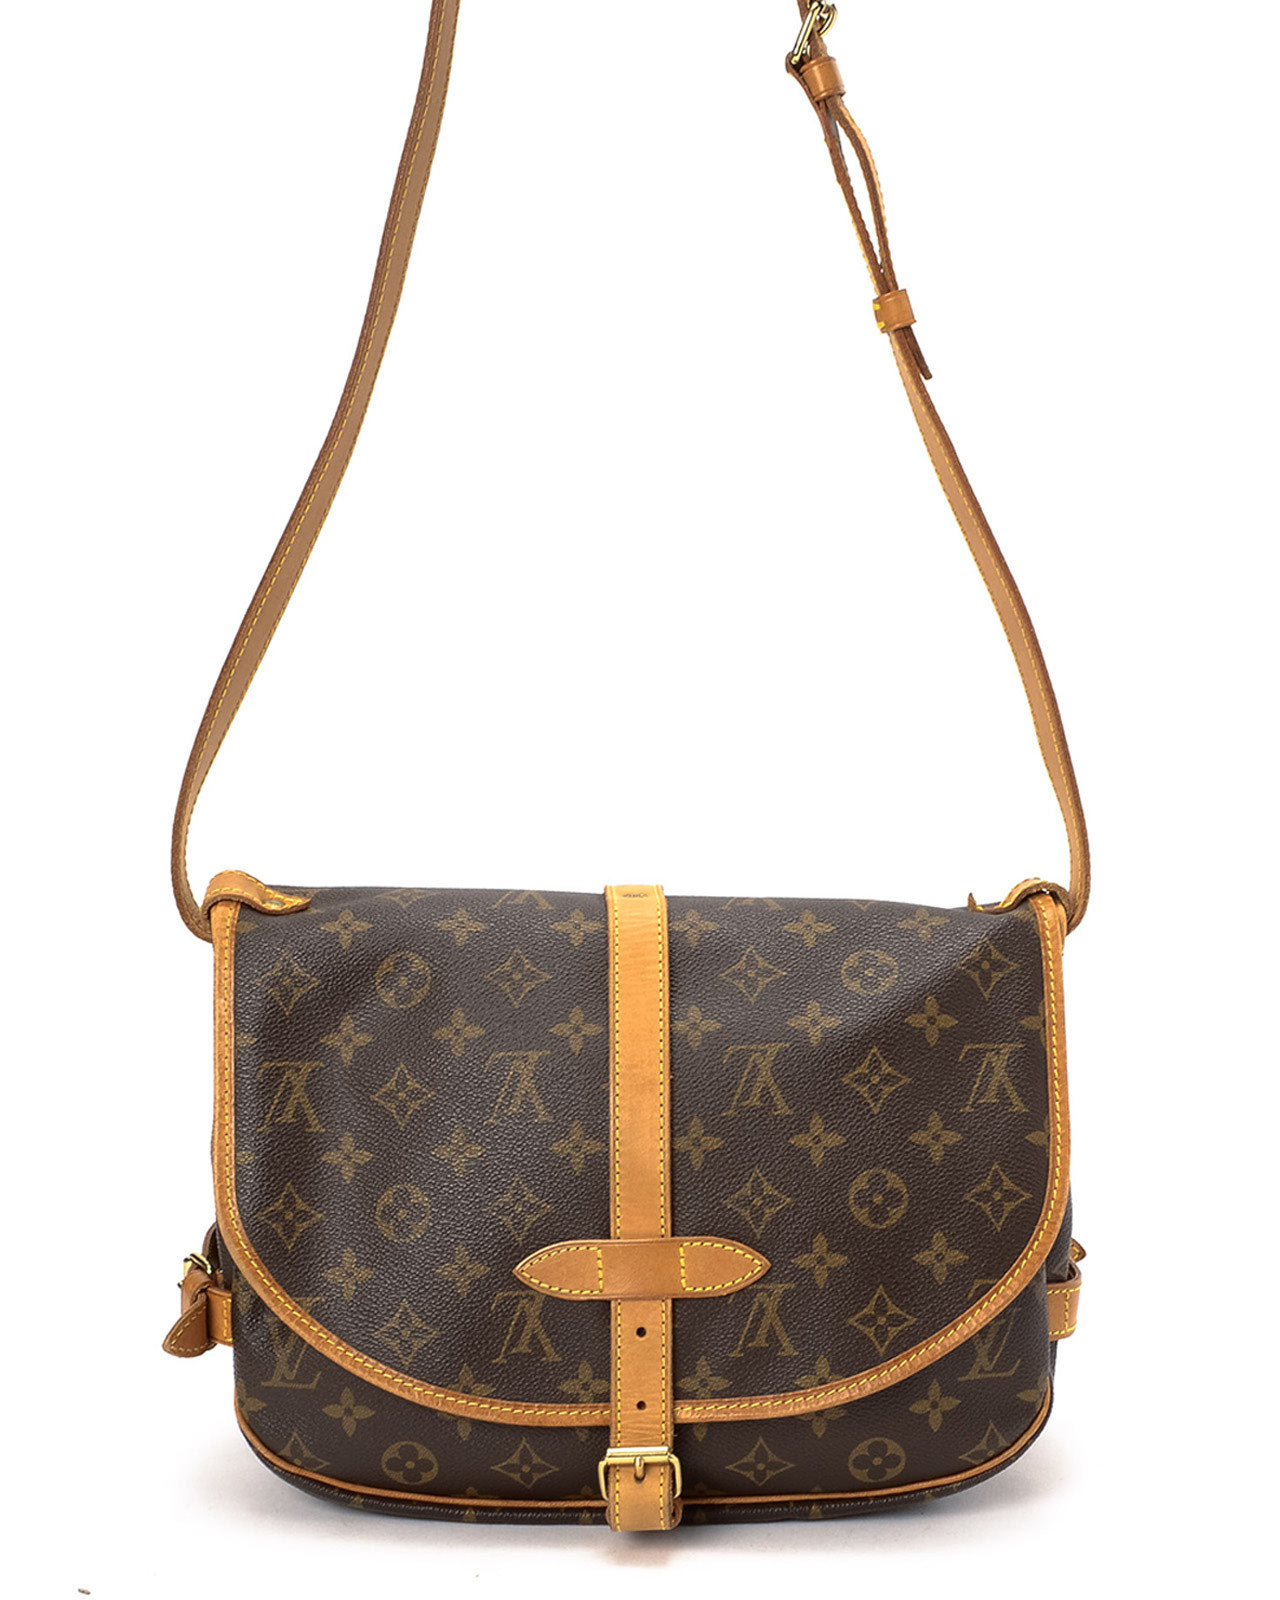 Louis vuitton monogram saumur 30 shoulder bag in brown lyst for Louis vuitton miroir bags